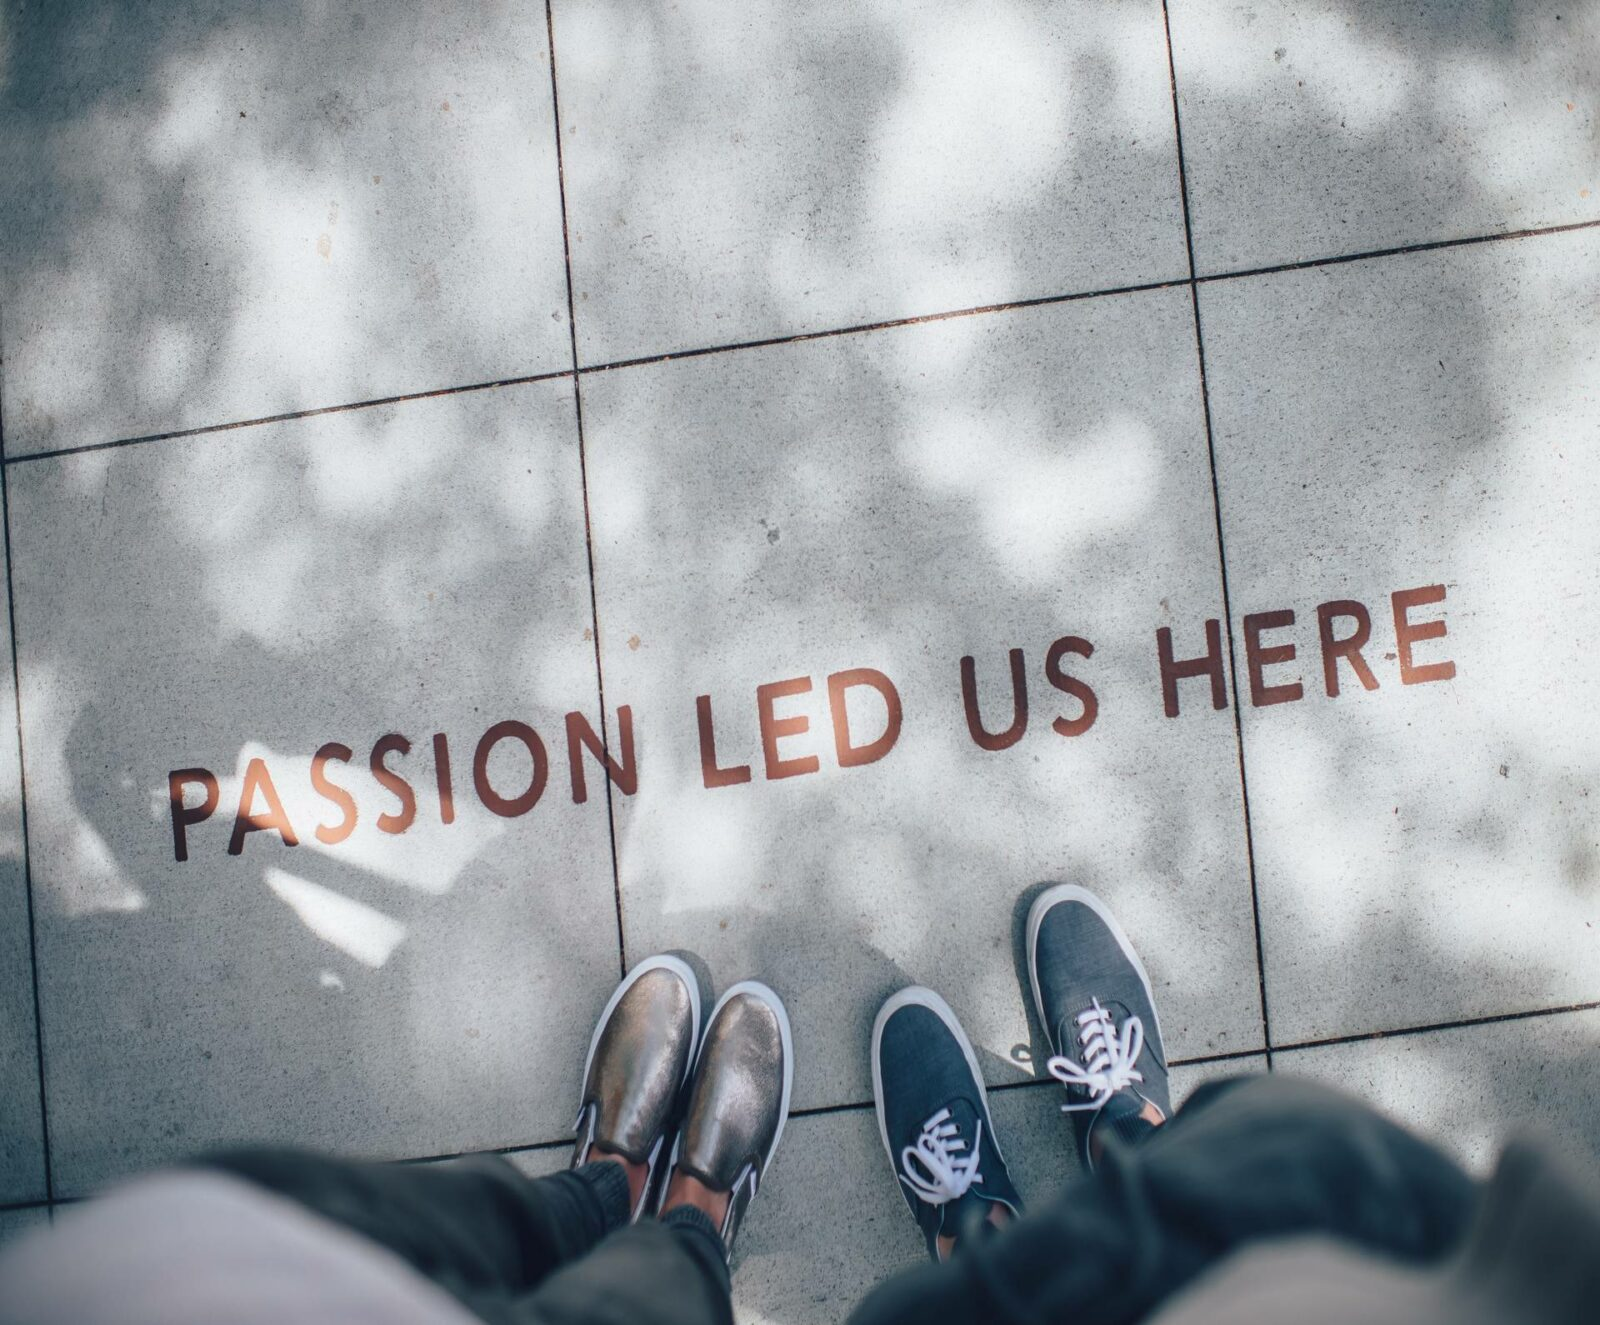 Passion led us here image